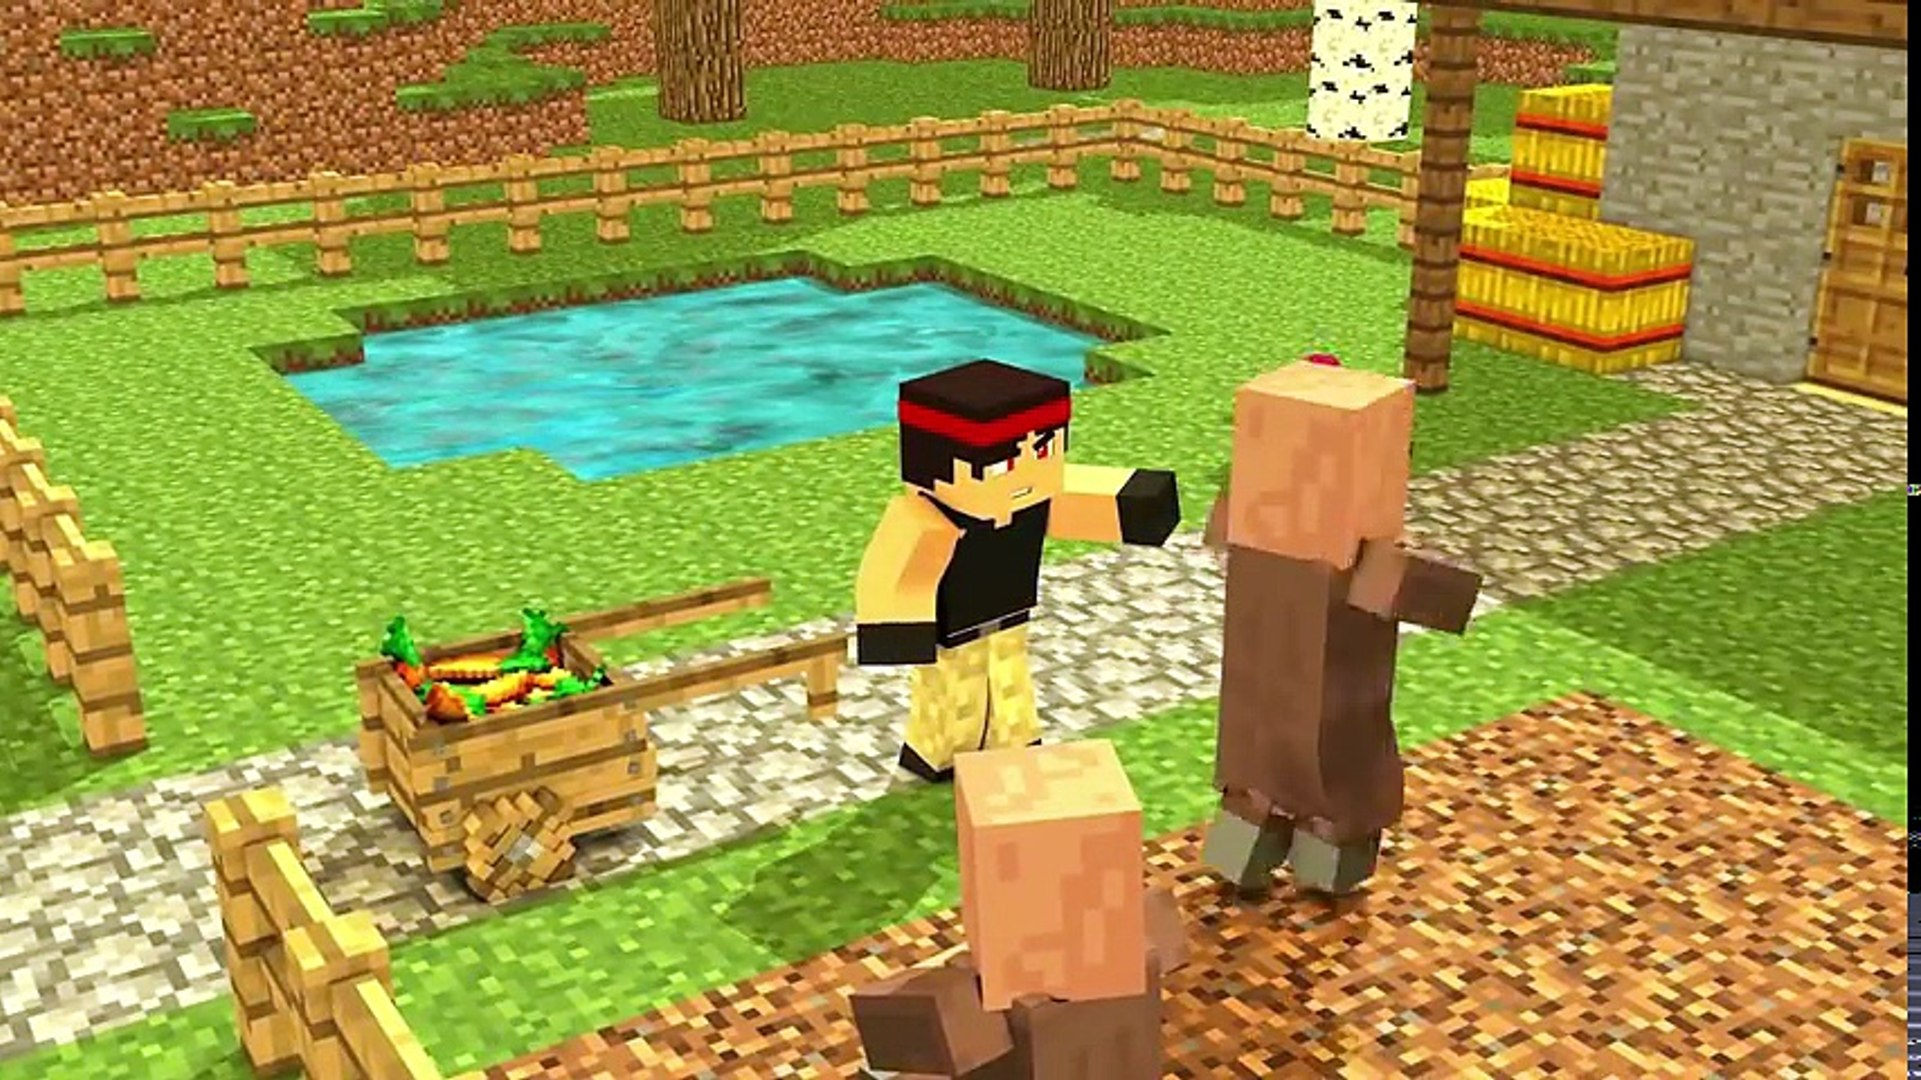 Villager Life / Witch Life / Steve Life - Top Minecraft Animations